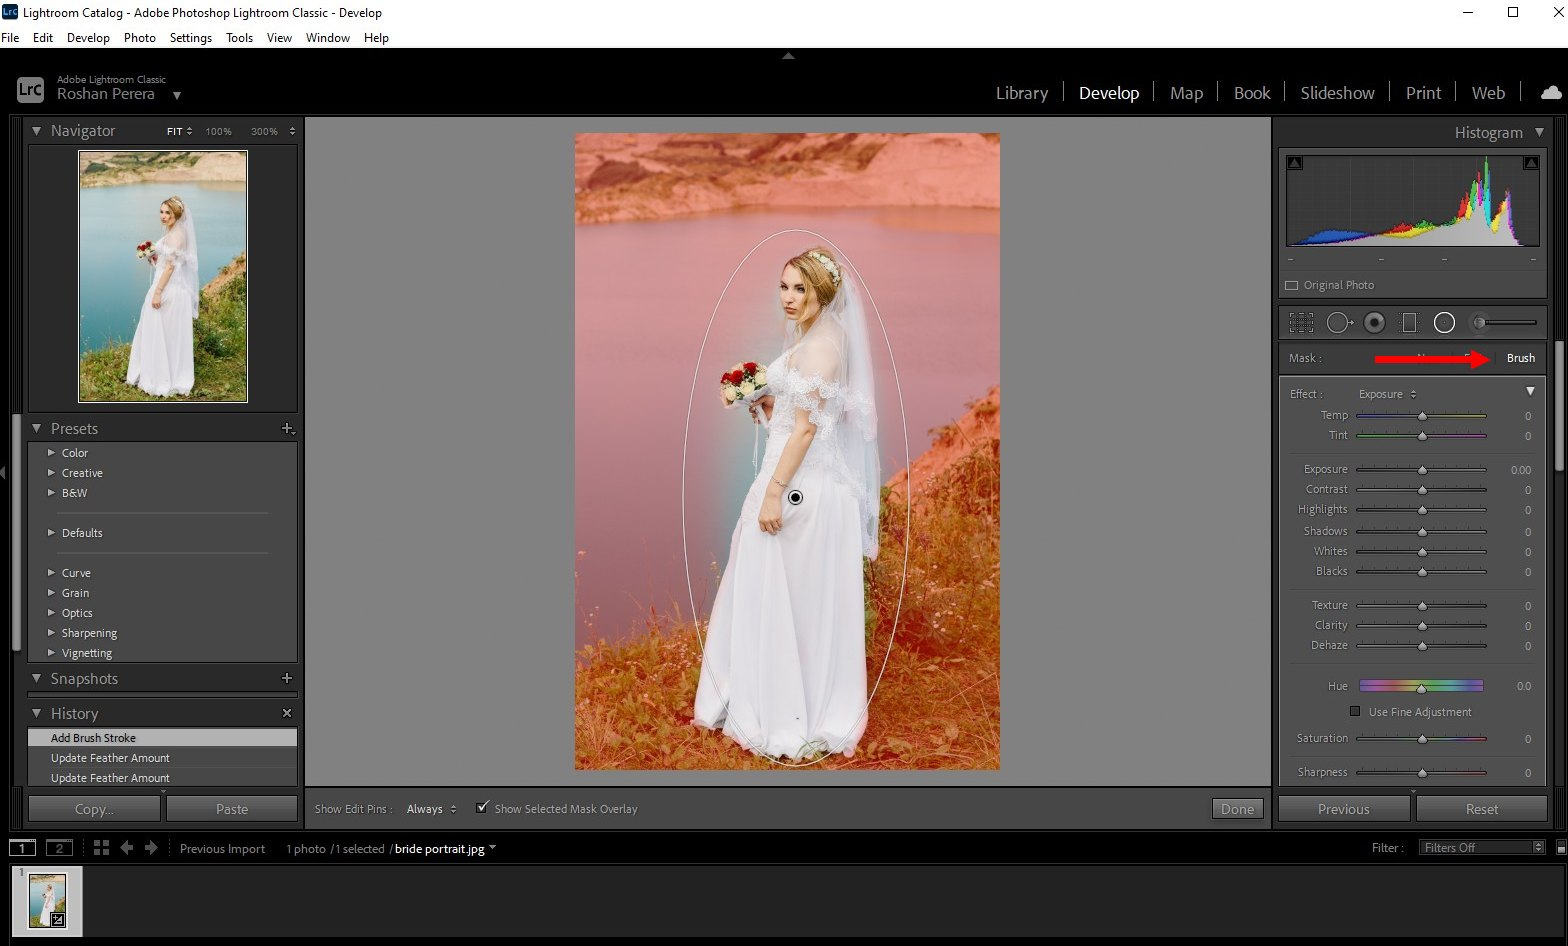 how to blur background lightroom classic - 3